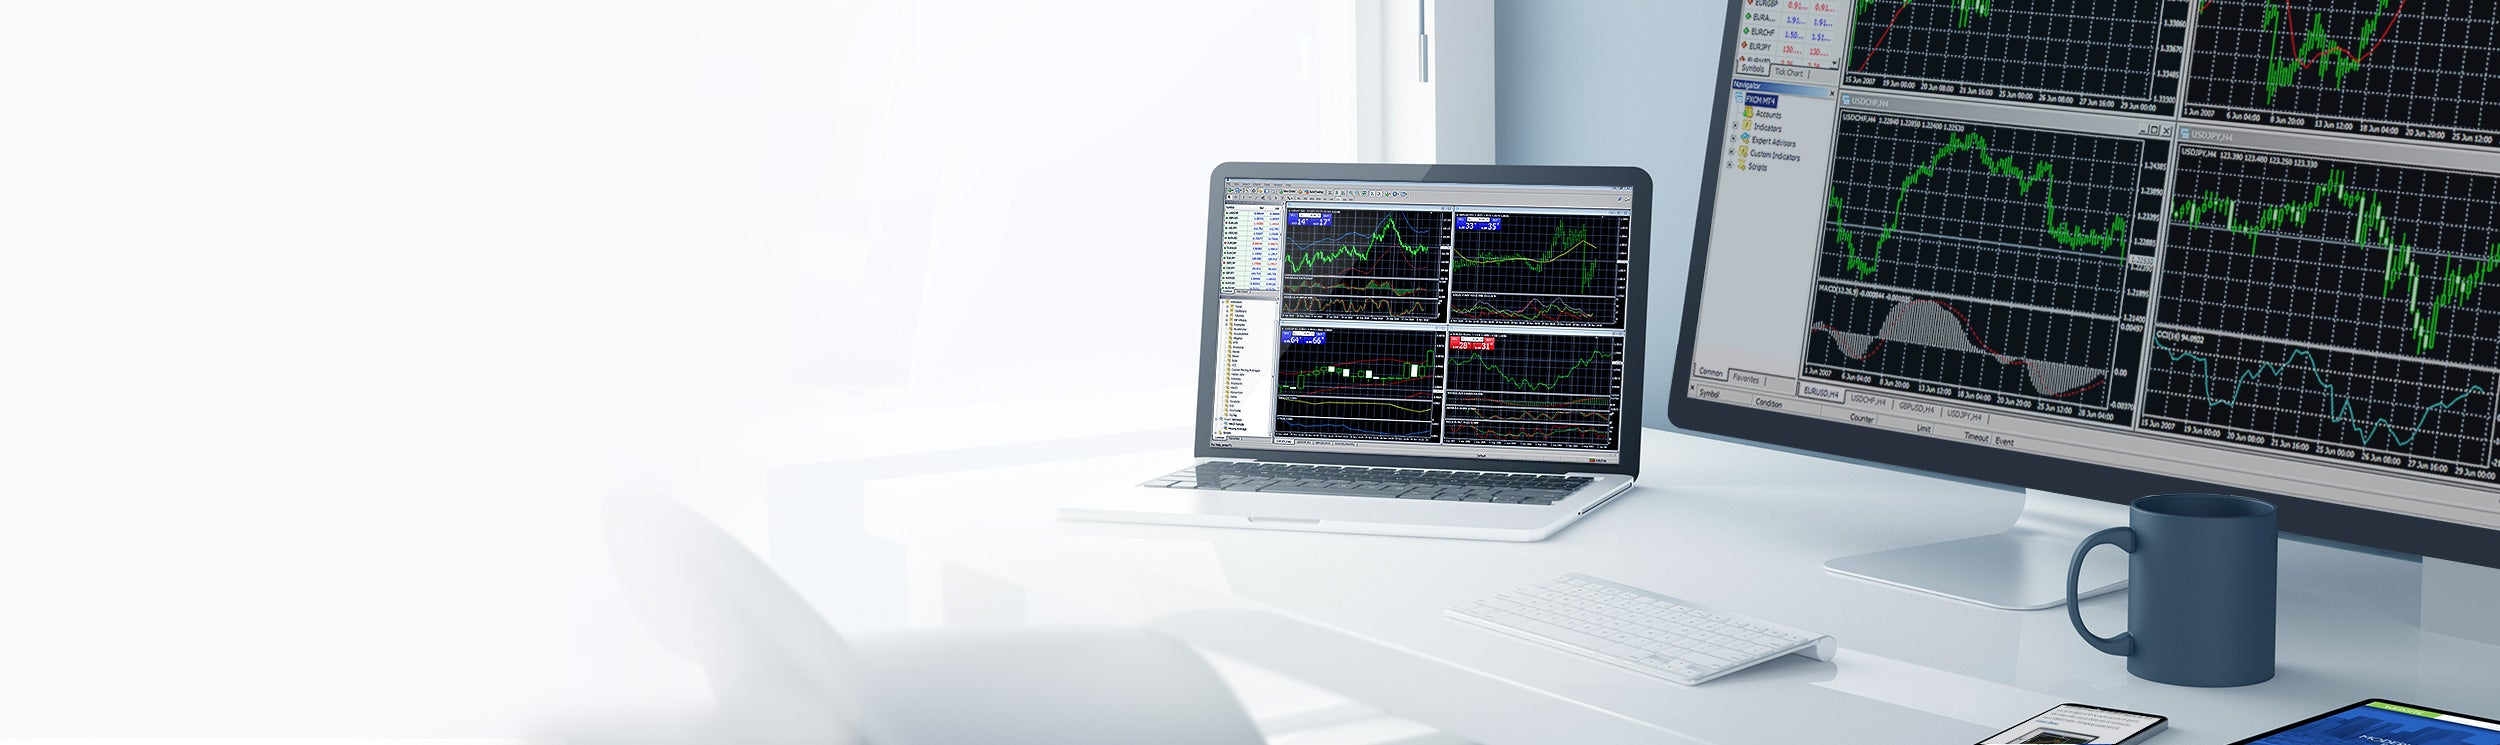 MetaTrader 4 - FXCM Markets